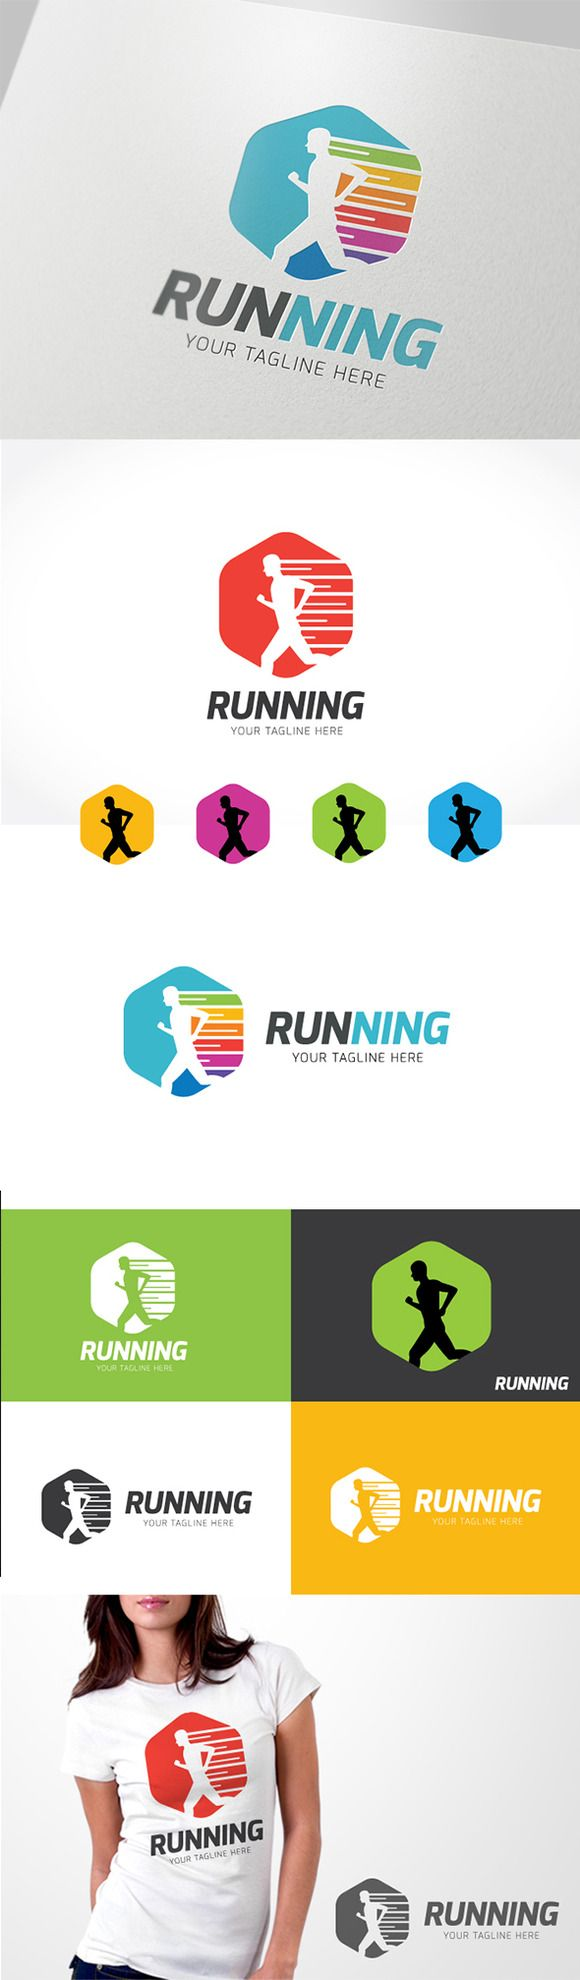 incorporating a runner into the image would be cool. Doesn\'t need to ...